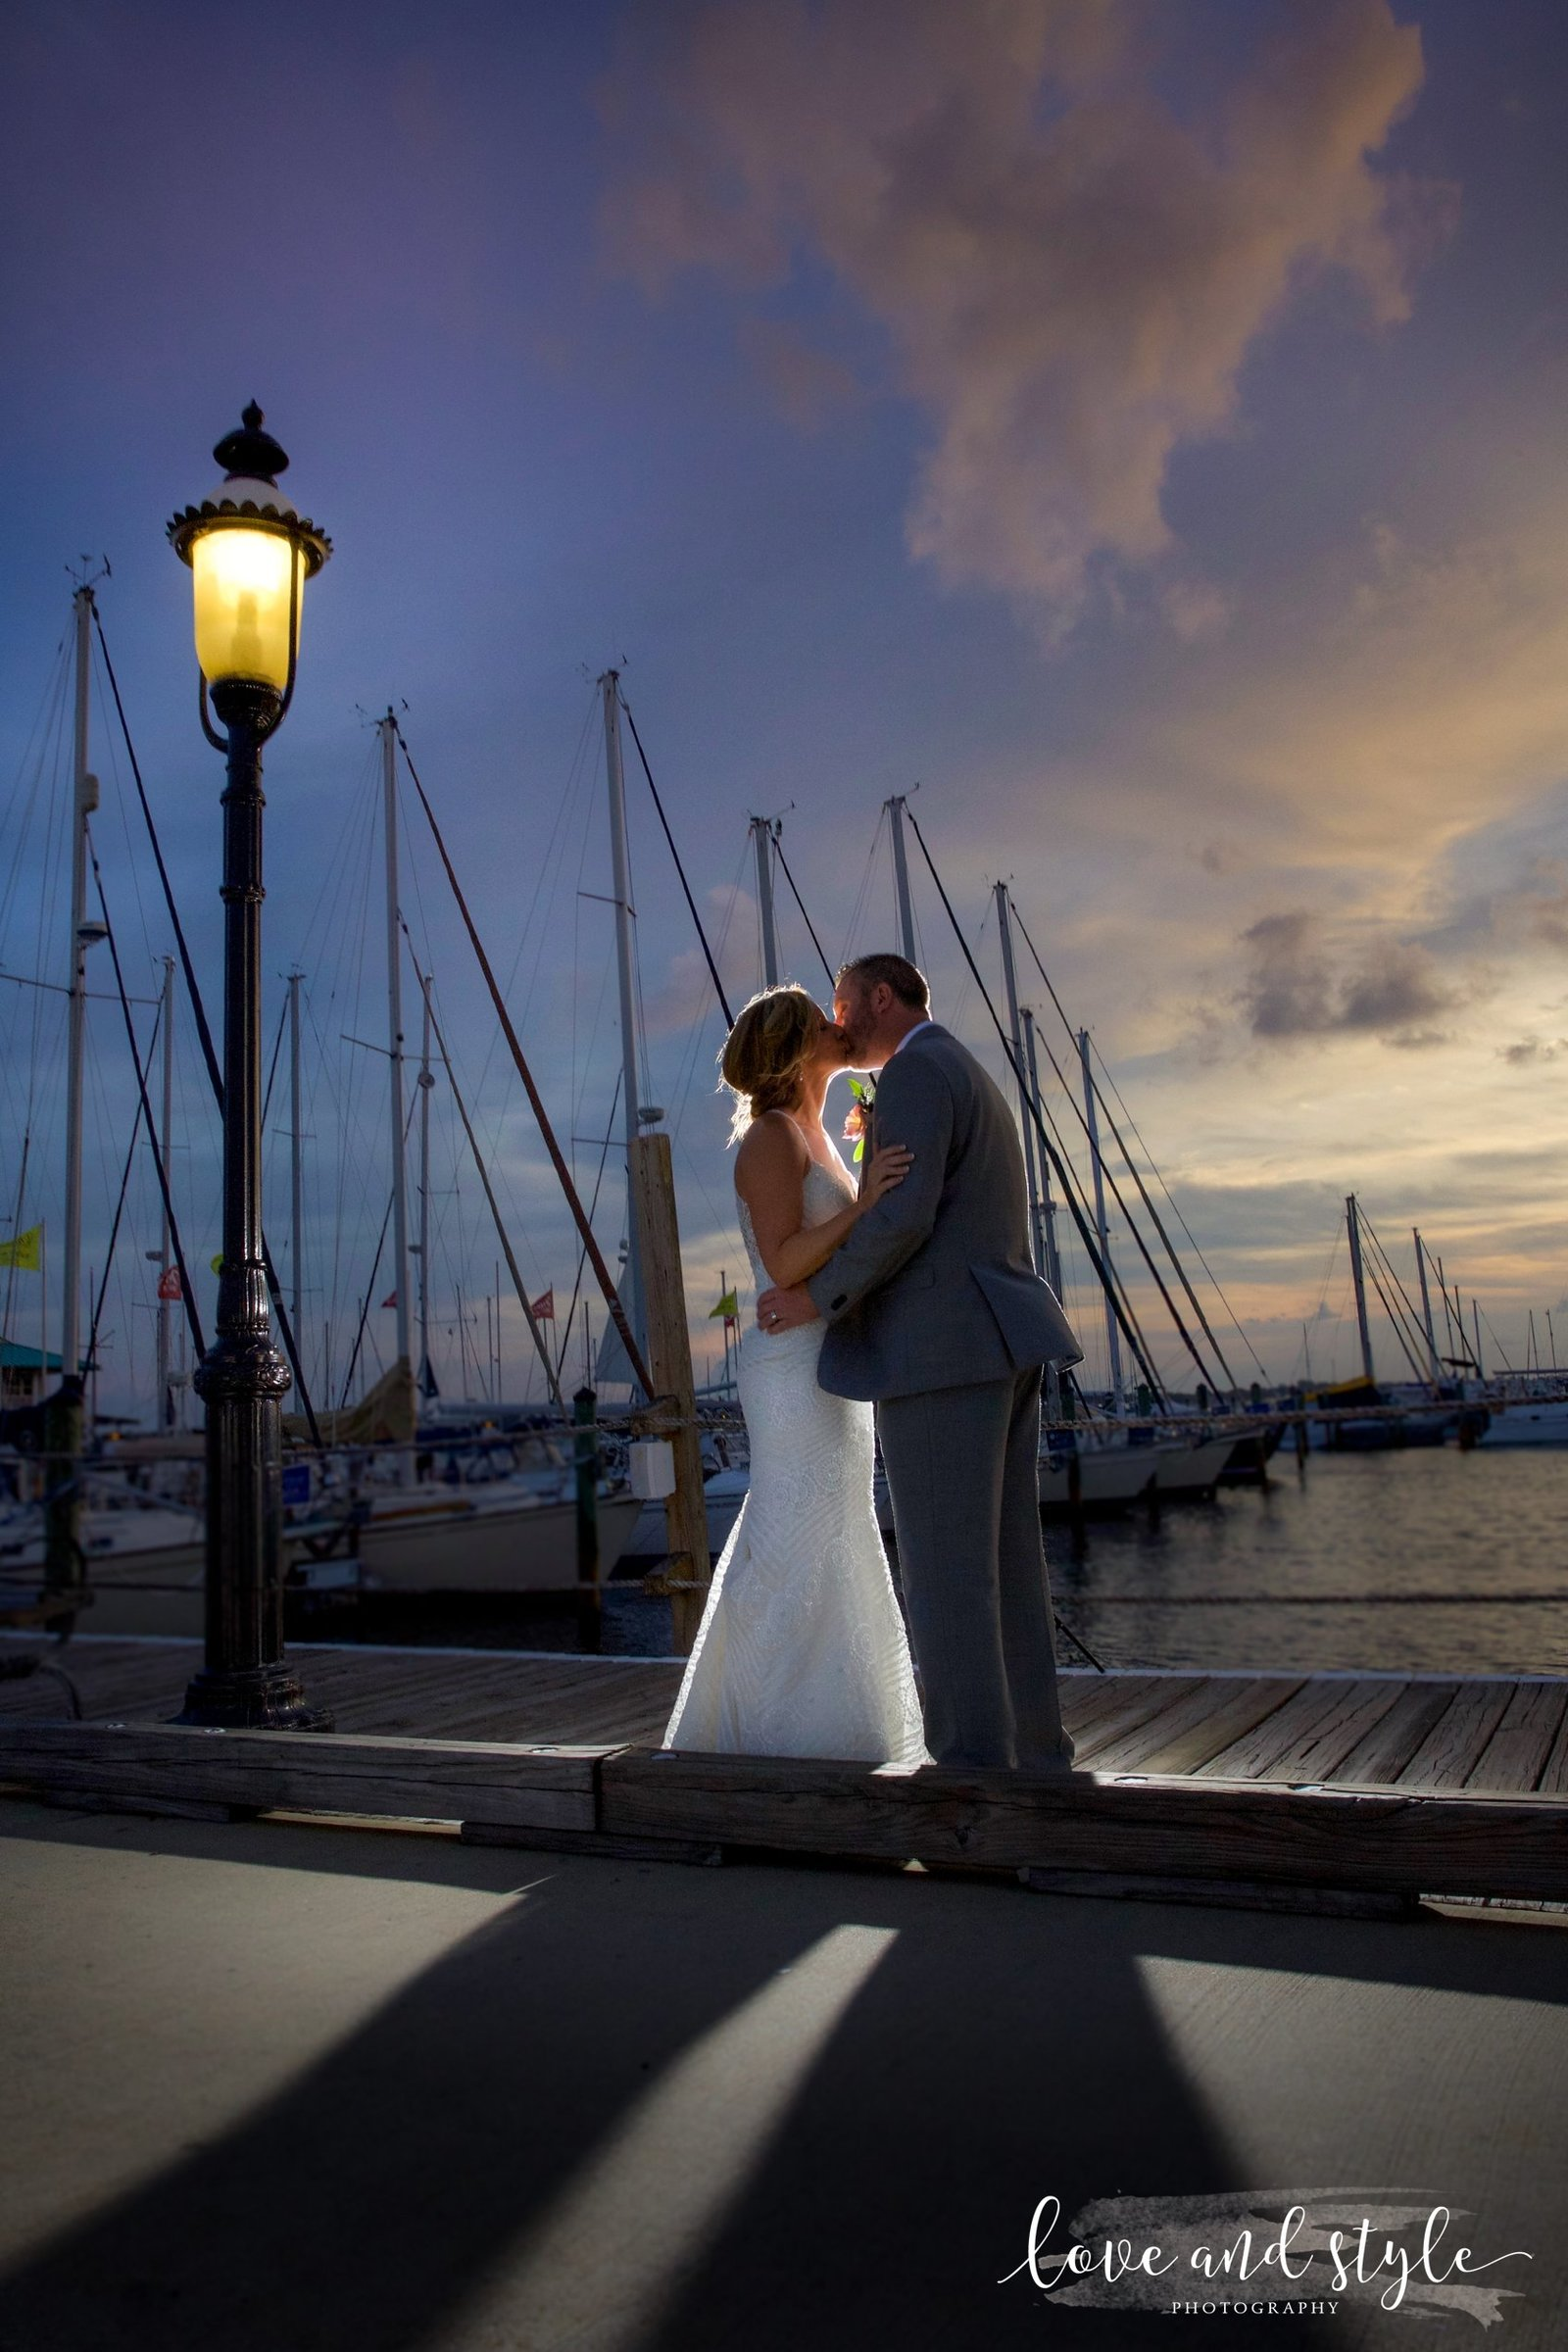 Riverhouse Reef and Grill Wedding Photography, bride and groom kissing on the dock with boats and sunset in the background